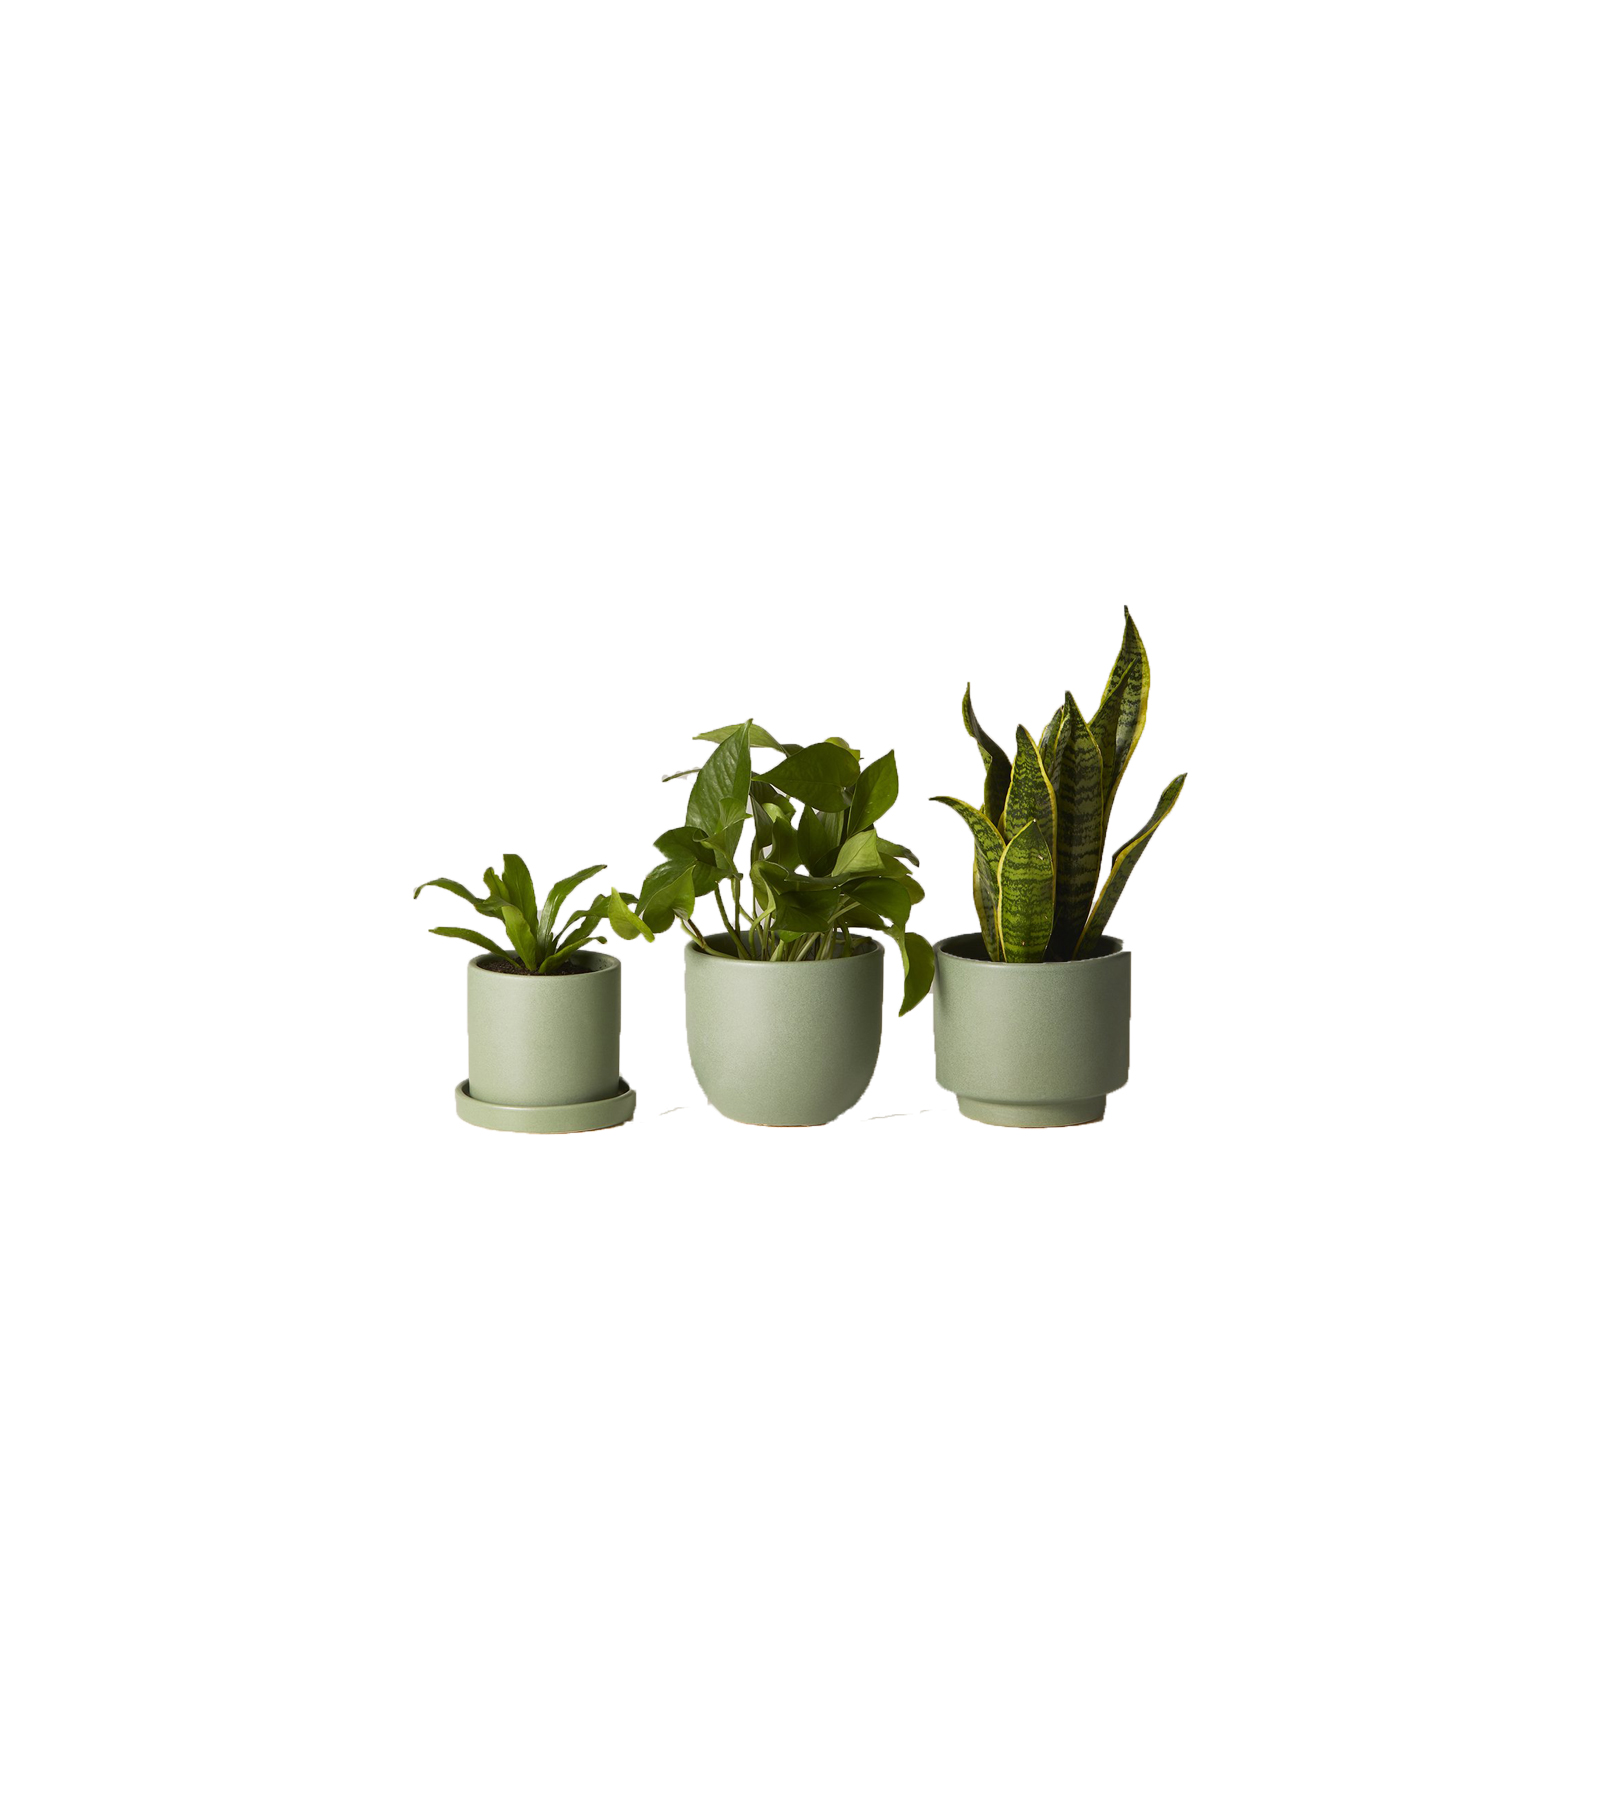 The Sill Plant Subscription